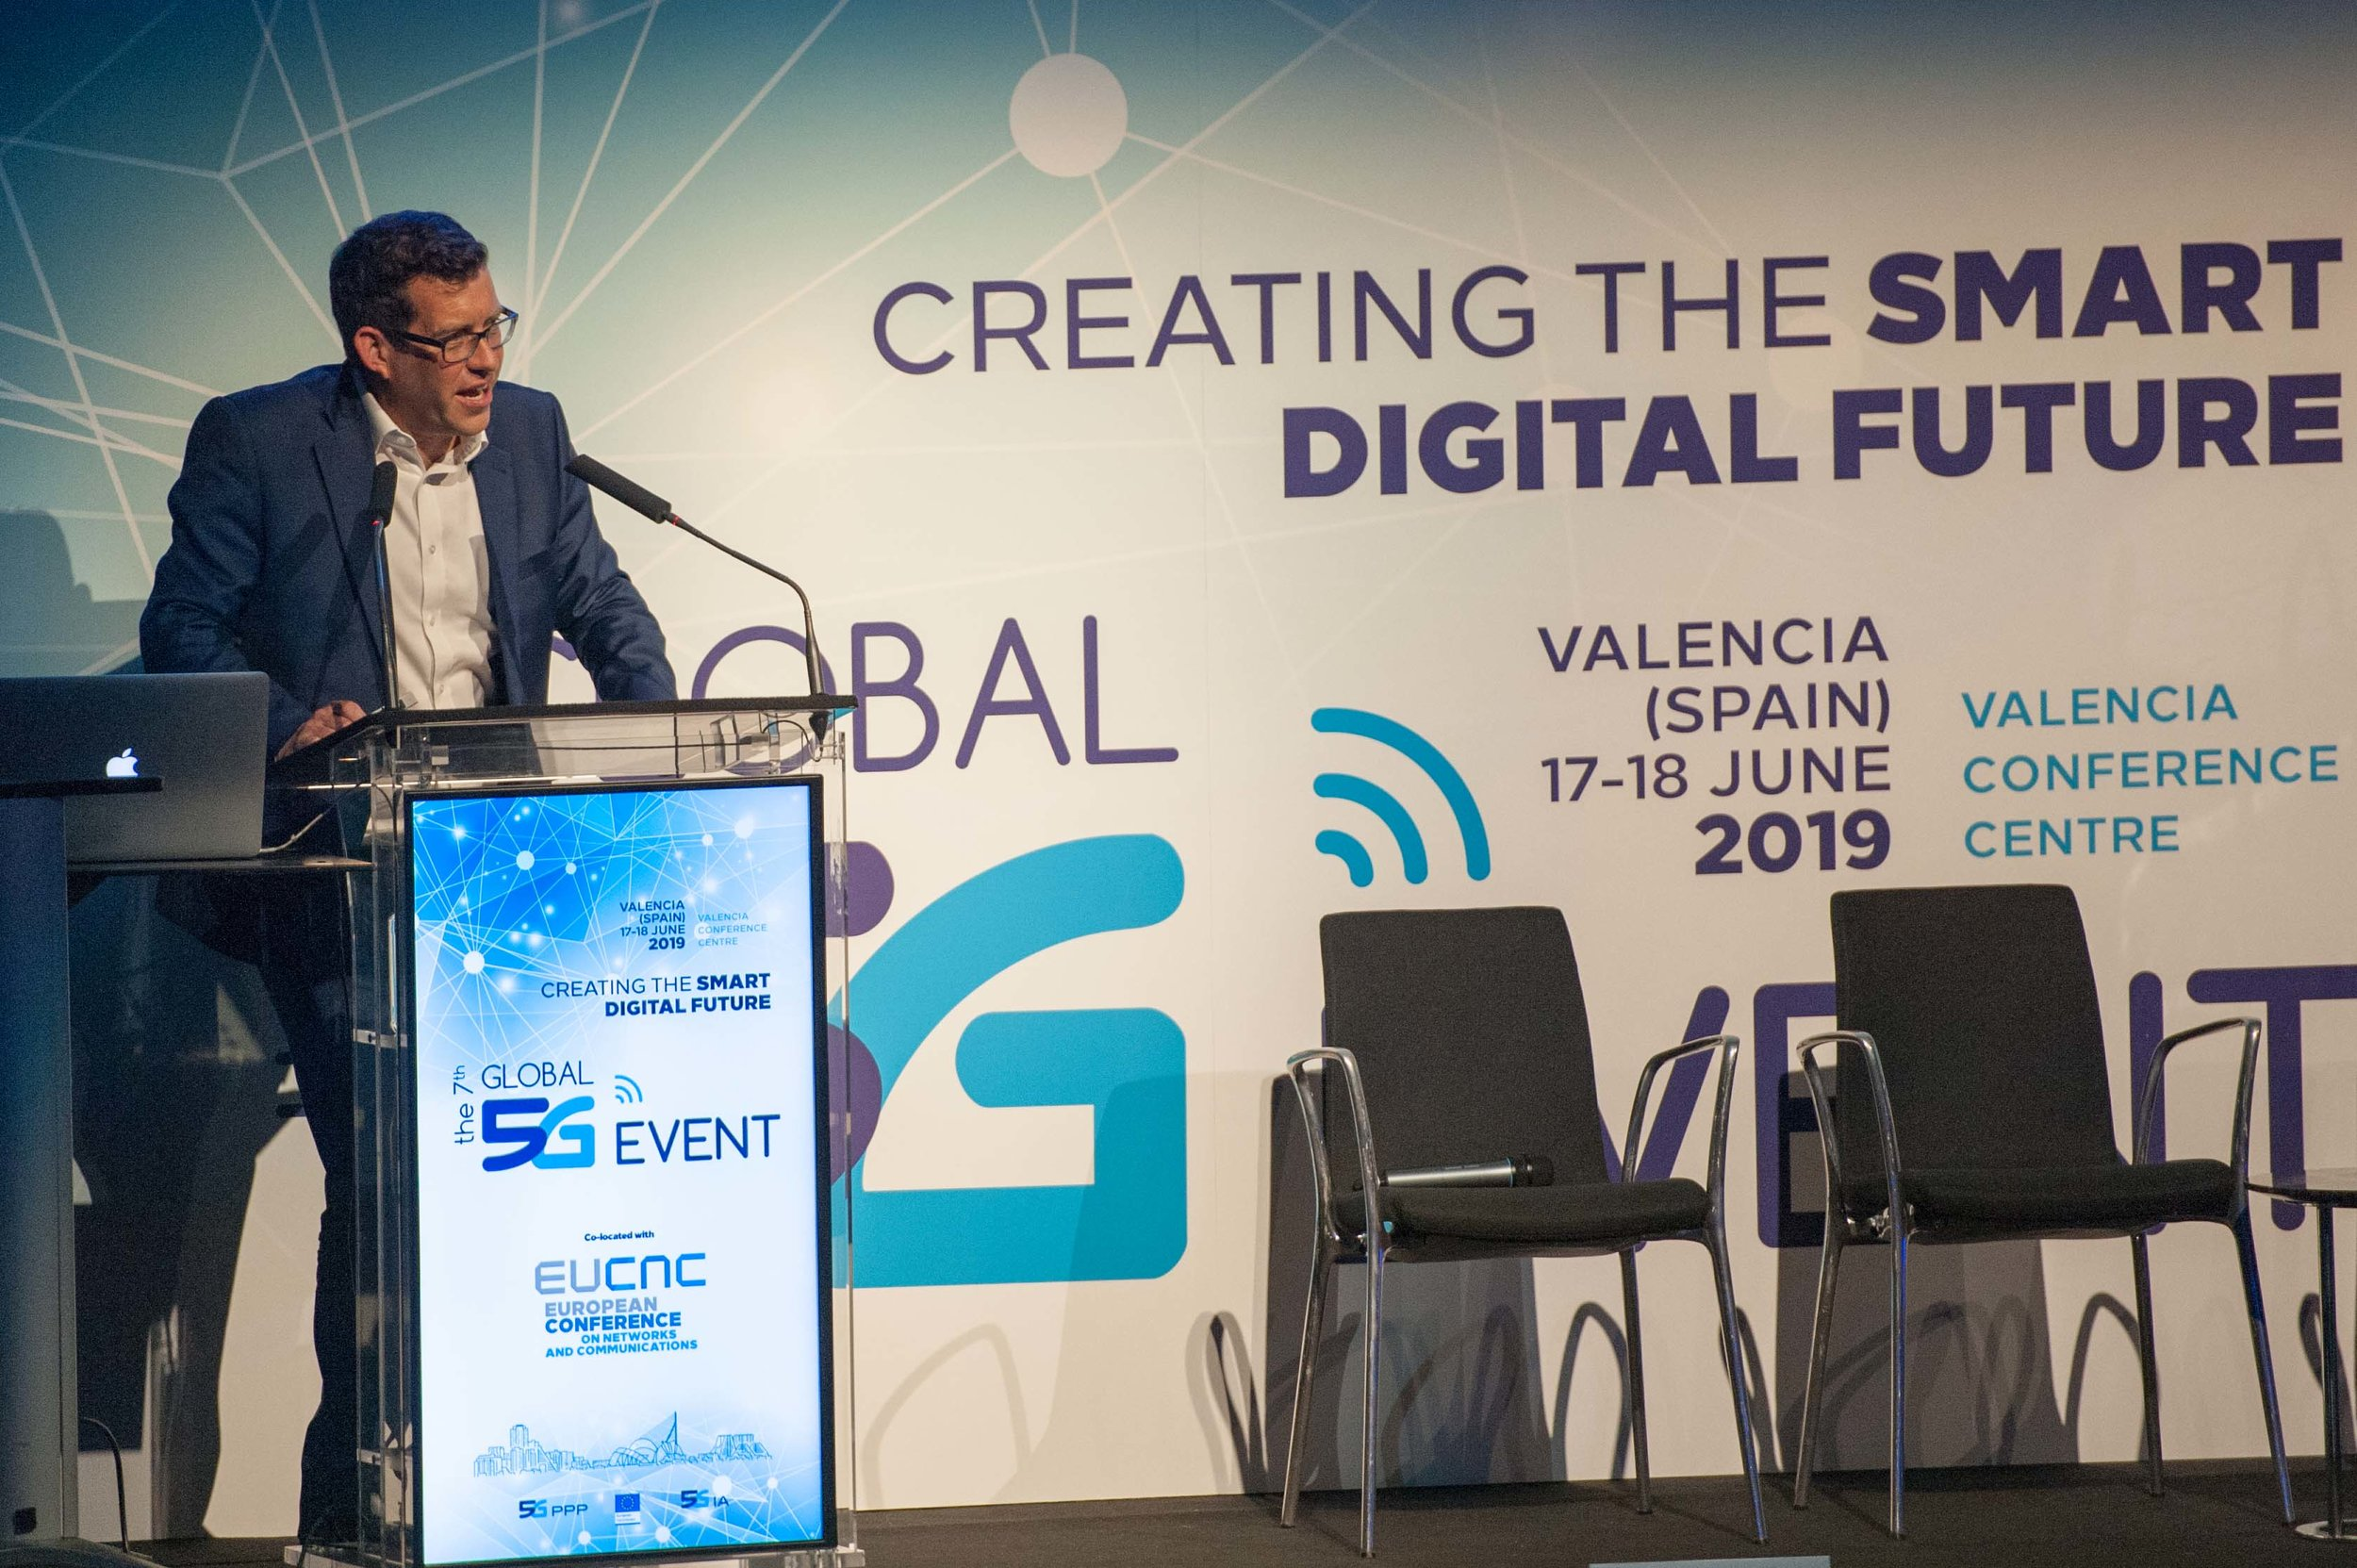 5GPPP_Valencia2019_Global5GEvent_7.jpg